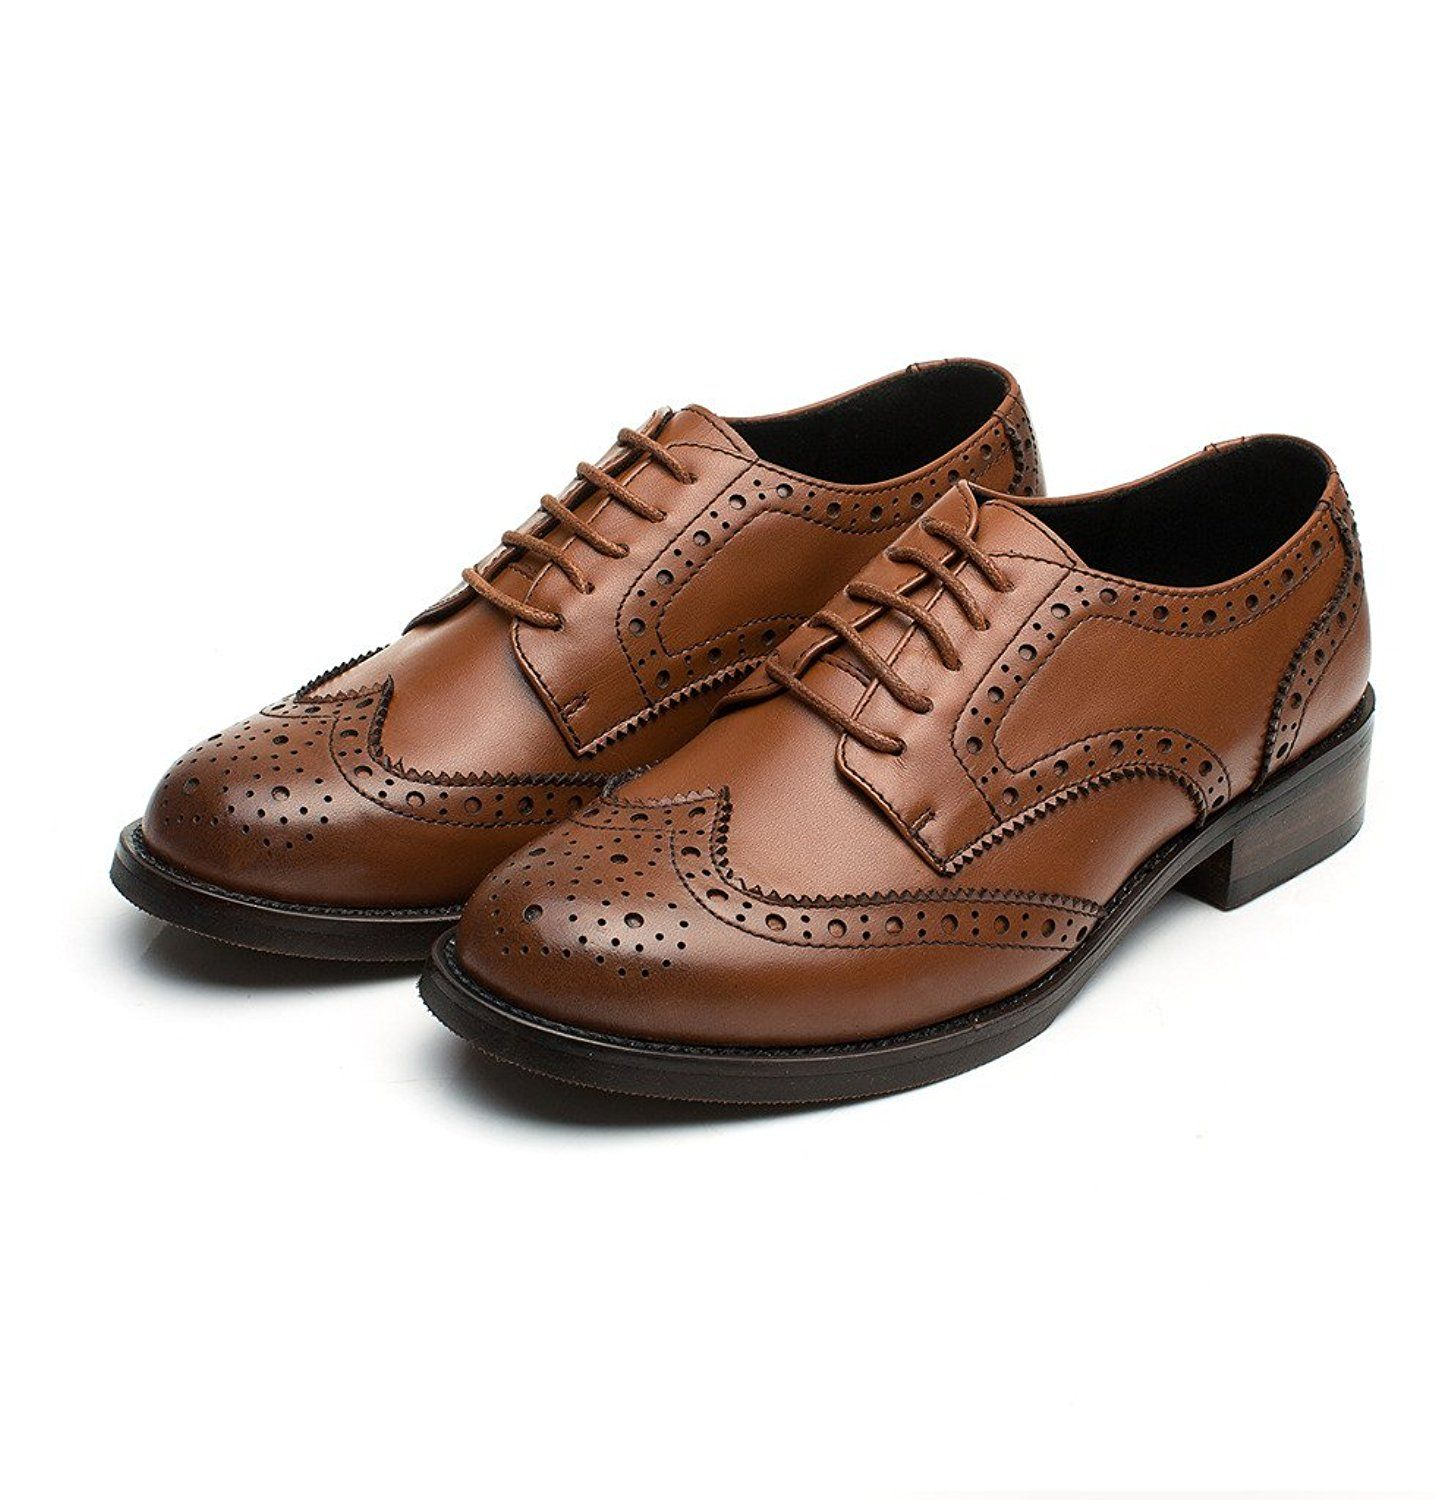 81a4e8125d13f Amazon.com | U-lite Brown Perforated Lace-up Wingtip Leather Flat ...